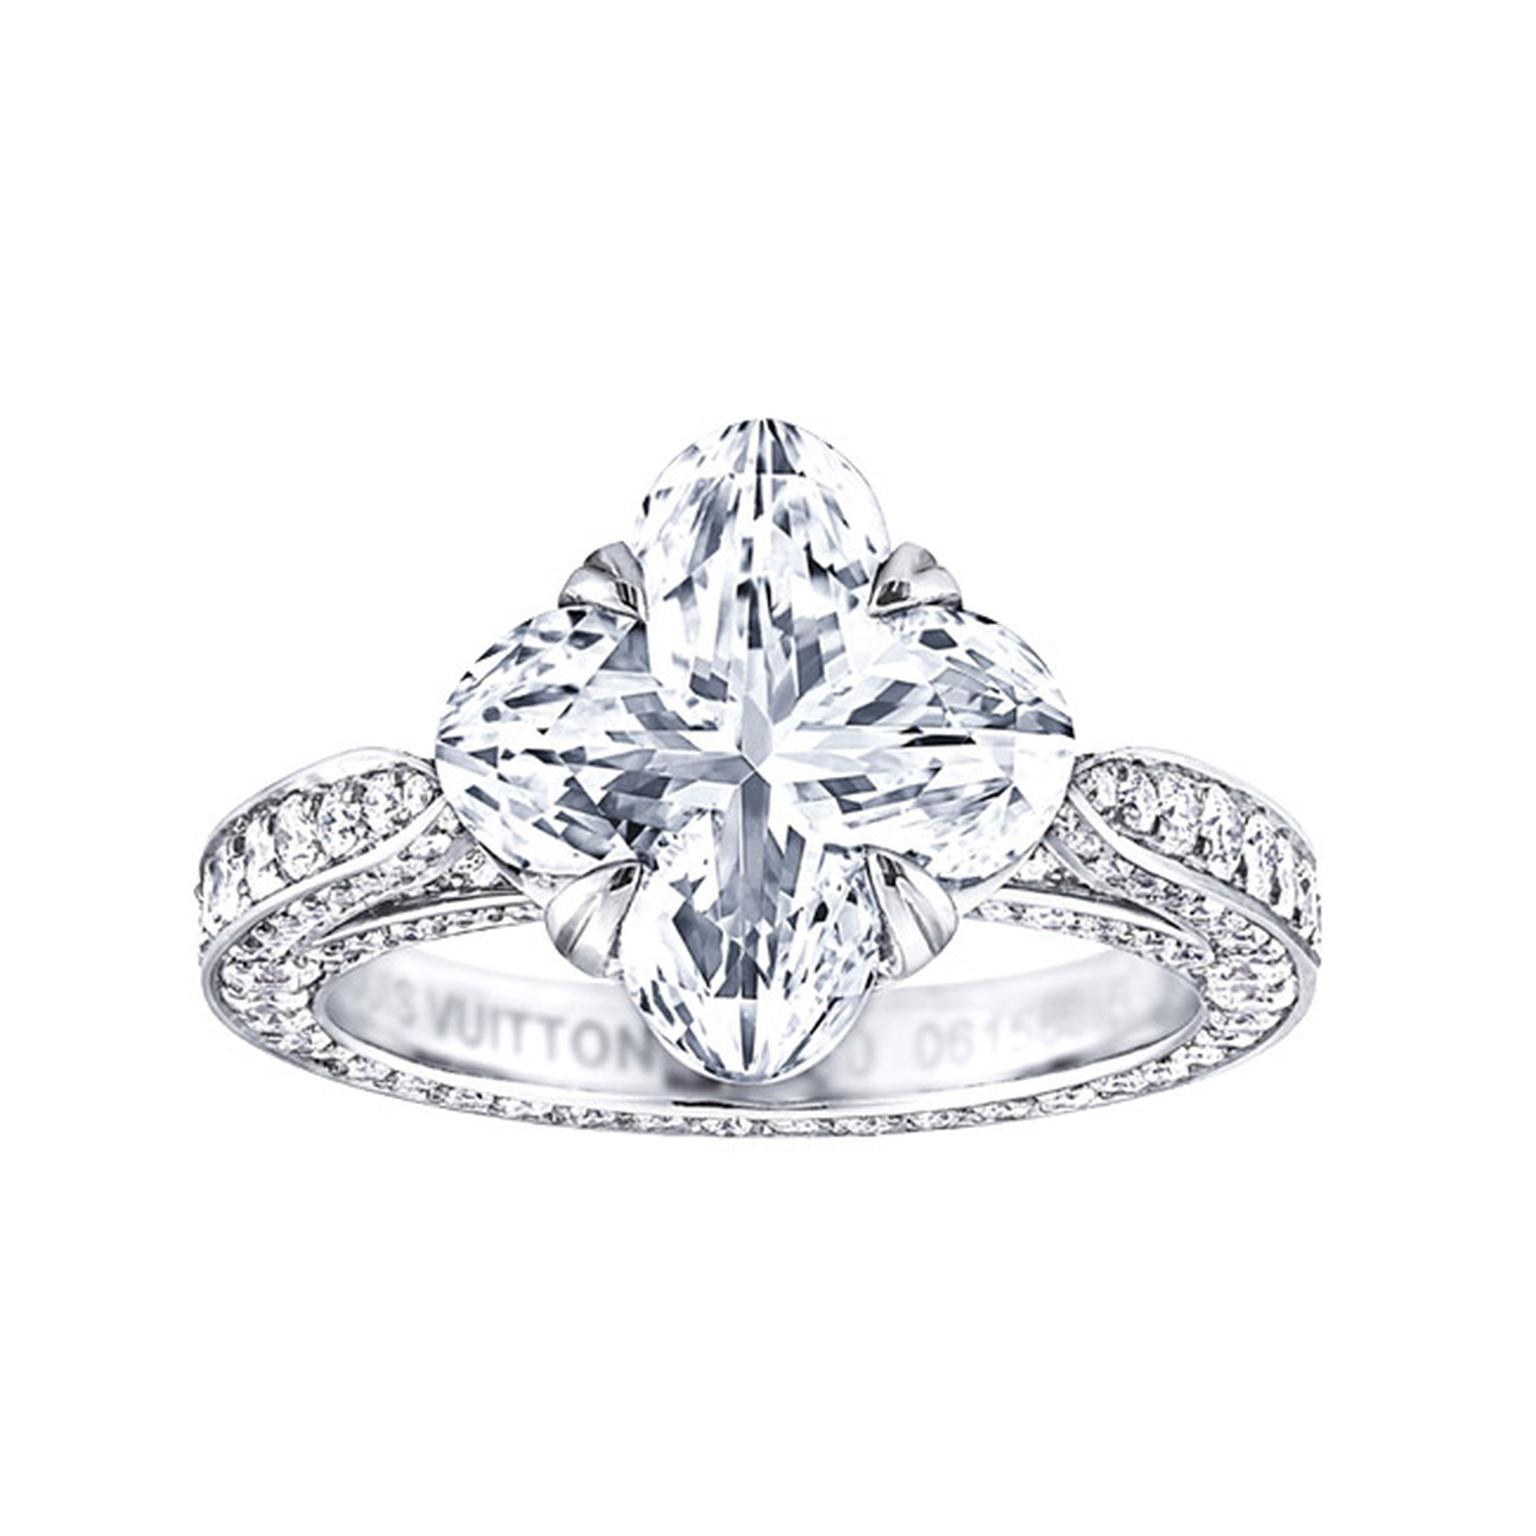 Louis Vuitton Flower Ring Main